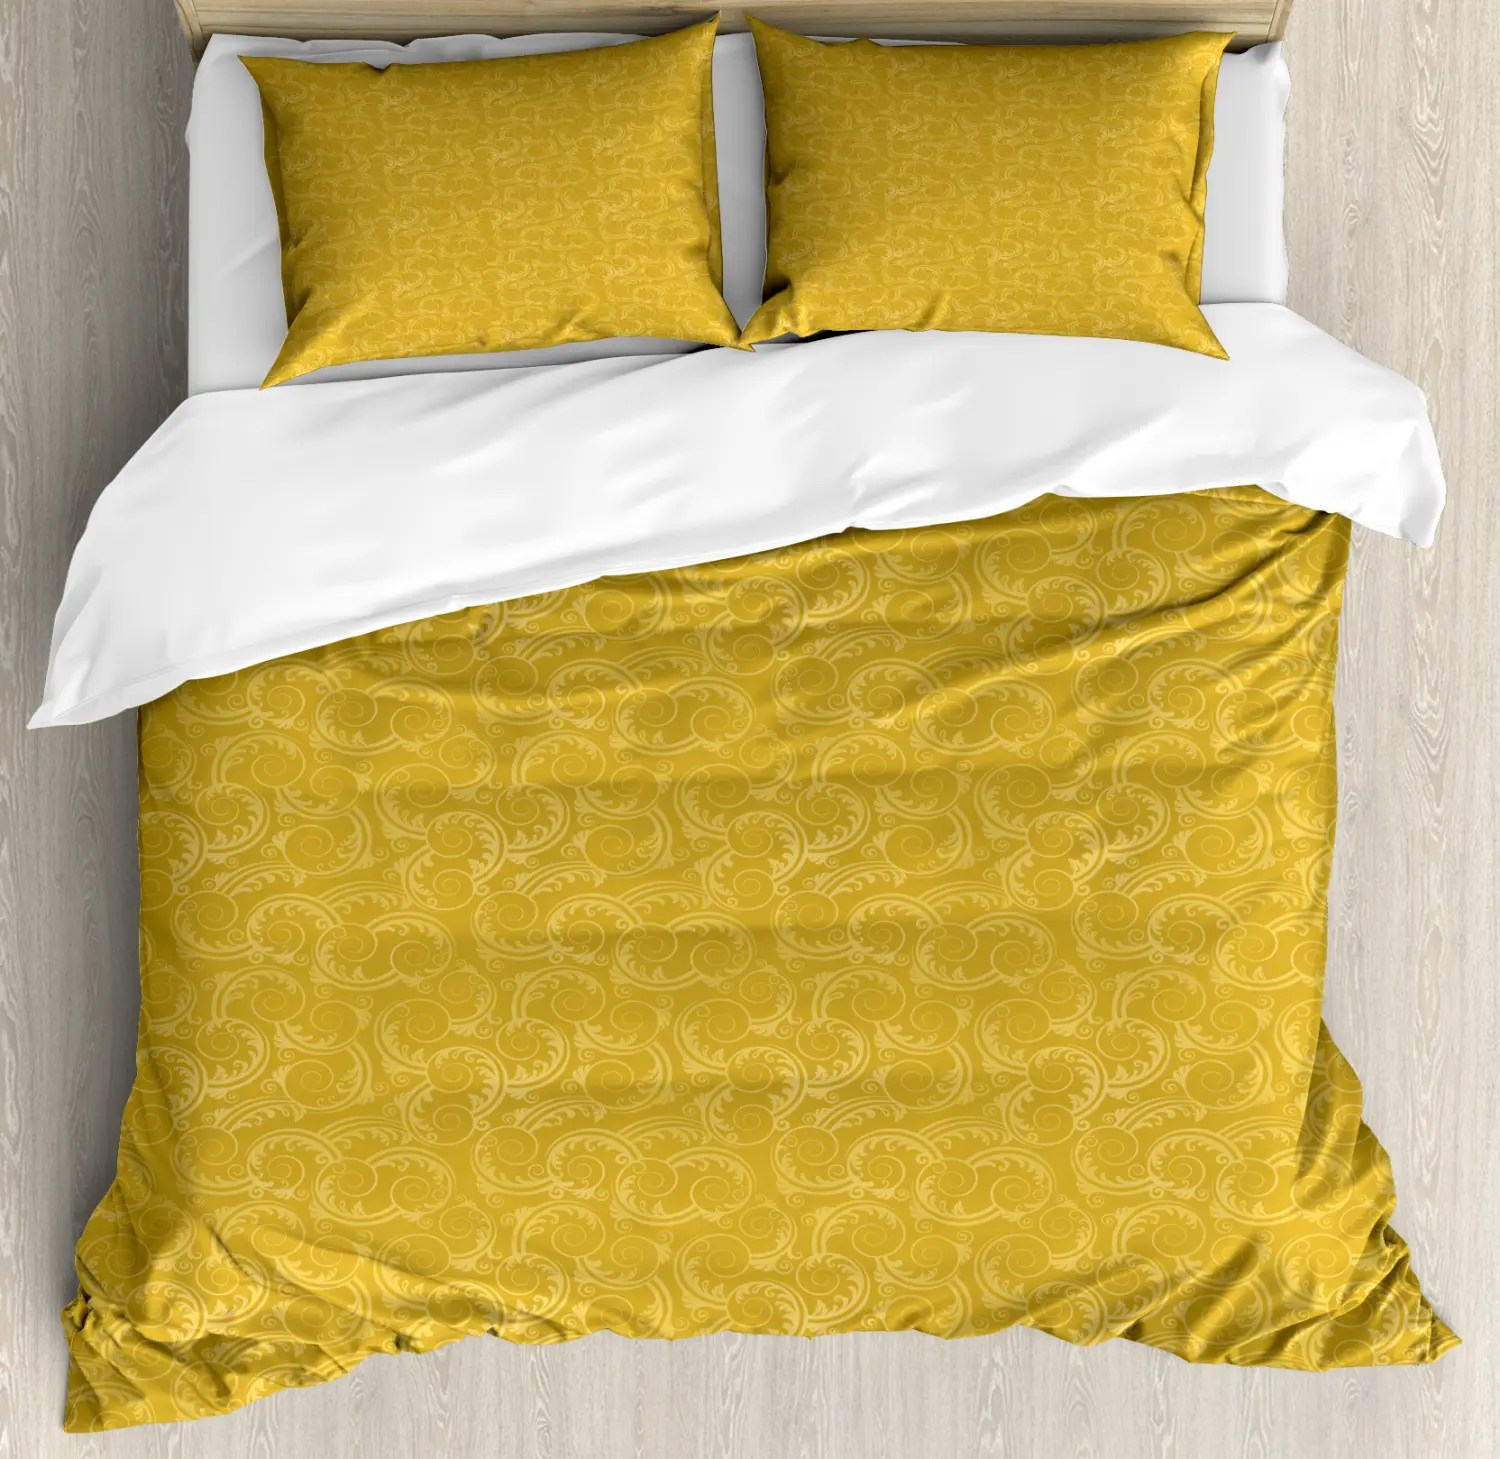 Damask Duvet Damask Ambesonne Duvet Cover Set Twin Queen King Sizes